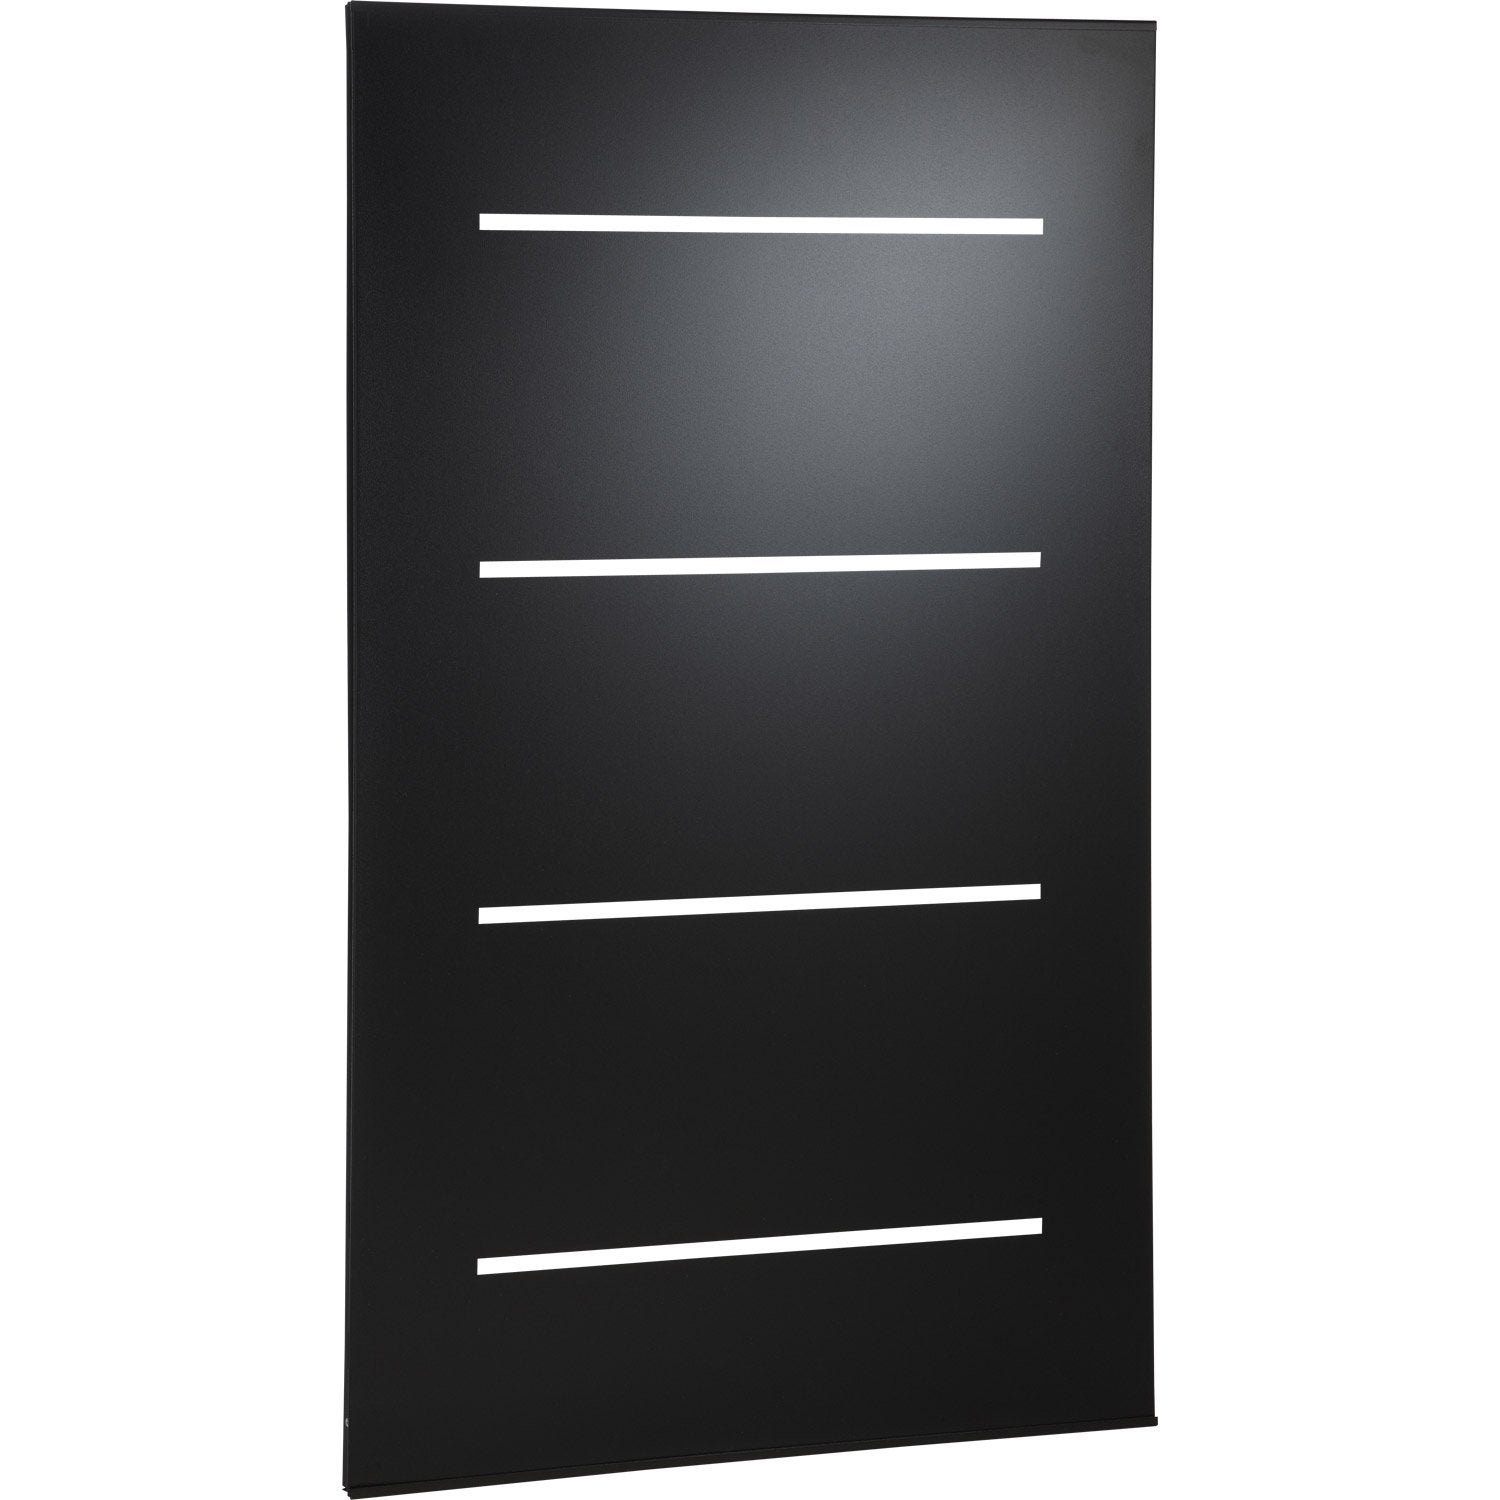 plaque de protection murale noir atelier dixneuf horizon cm x cm leroy merlin. Black Bedroom Furniture Sets. Home Design Ideas